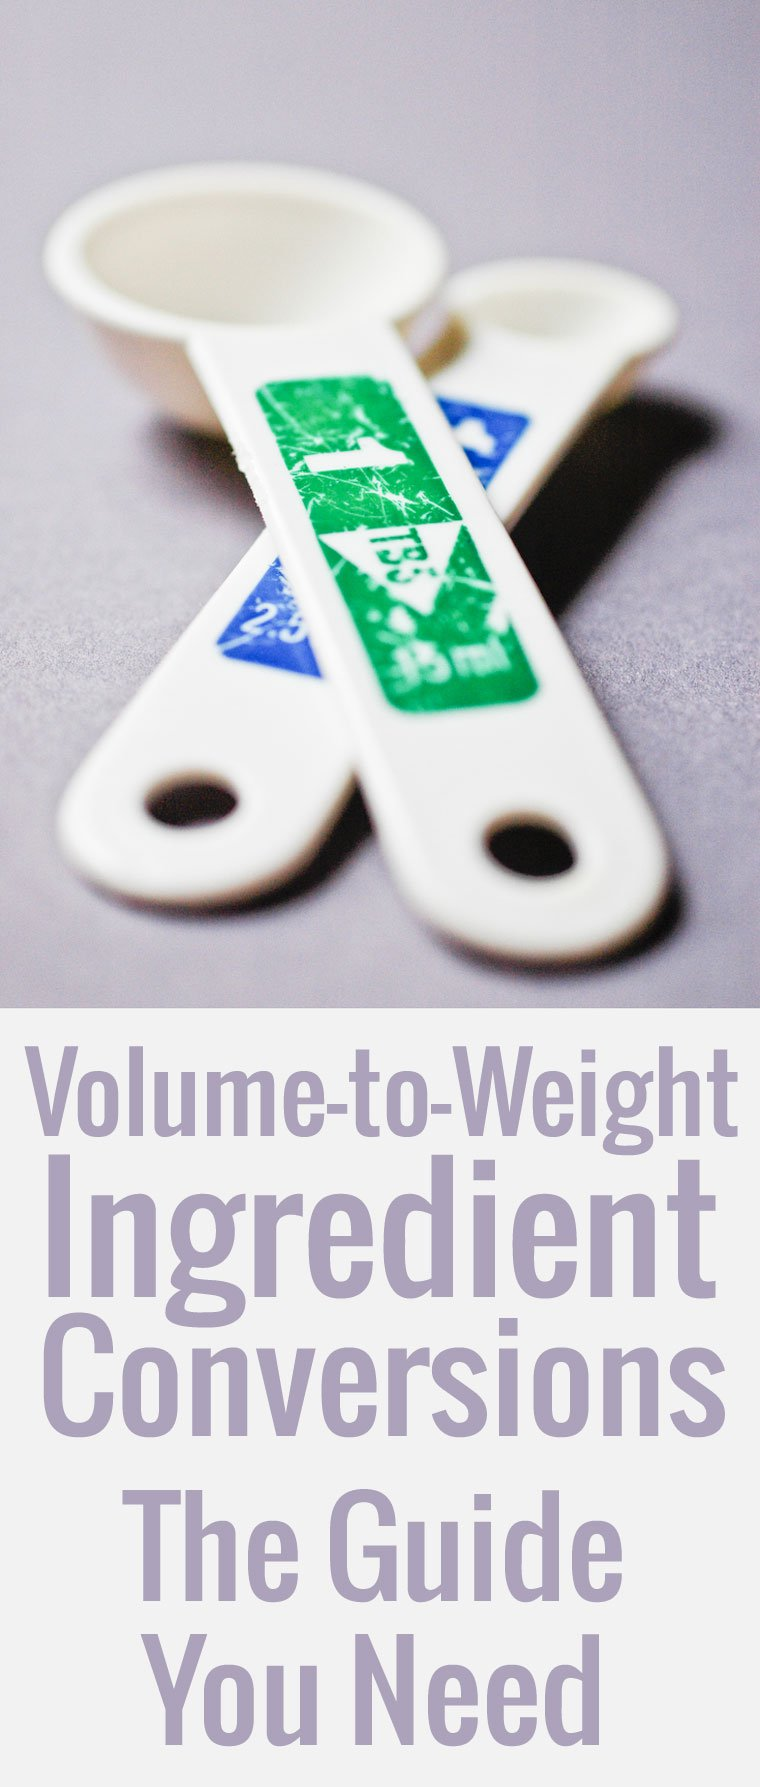 Ingredient conversions chocolate zucchini a handy guide to volume to weight conversions ingredient by ingredient so nvjuhfo Images